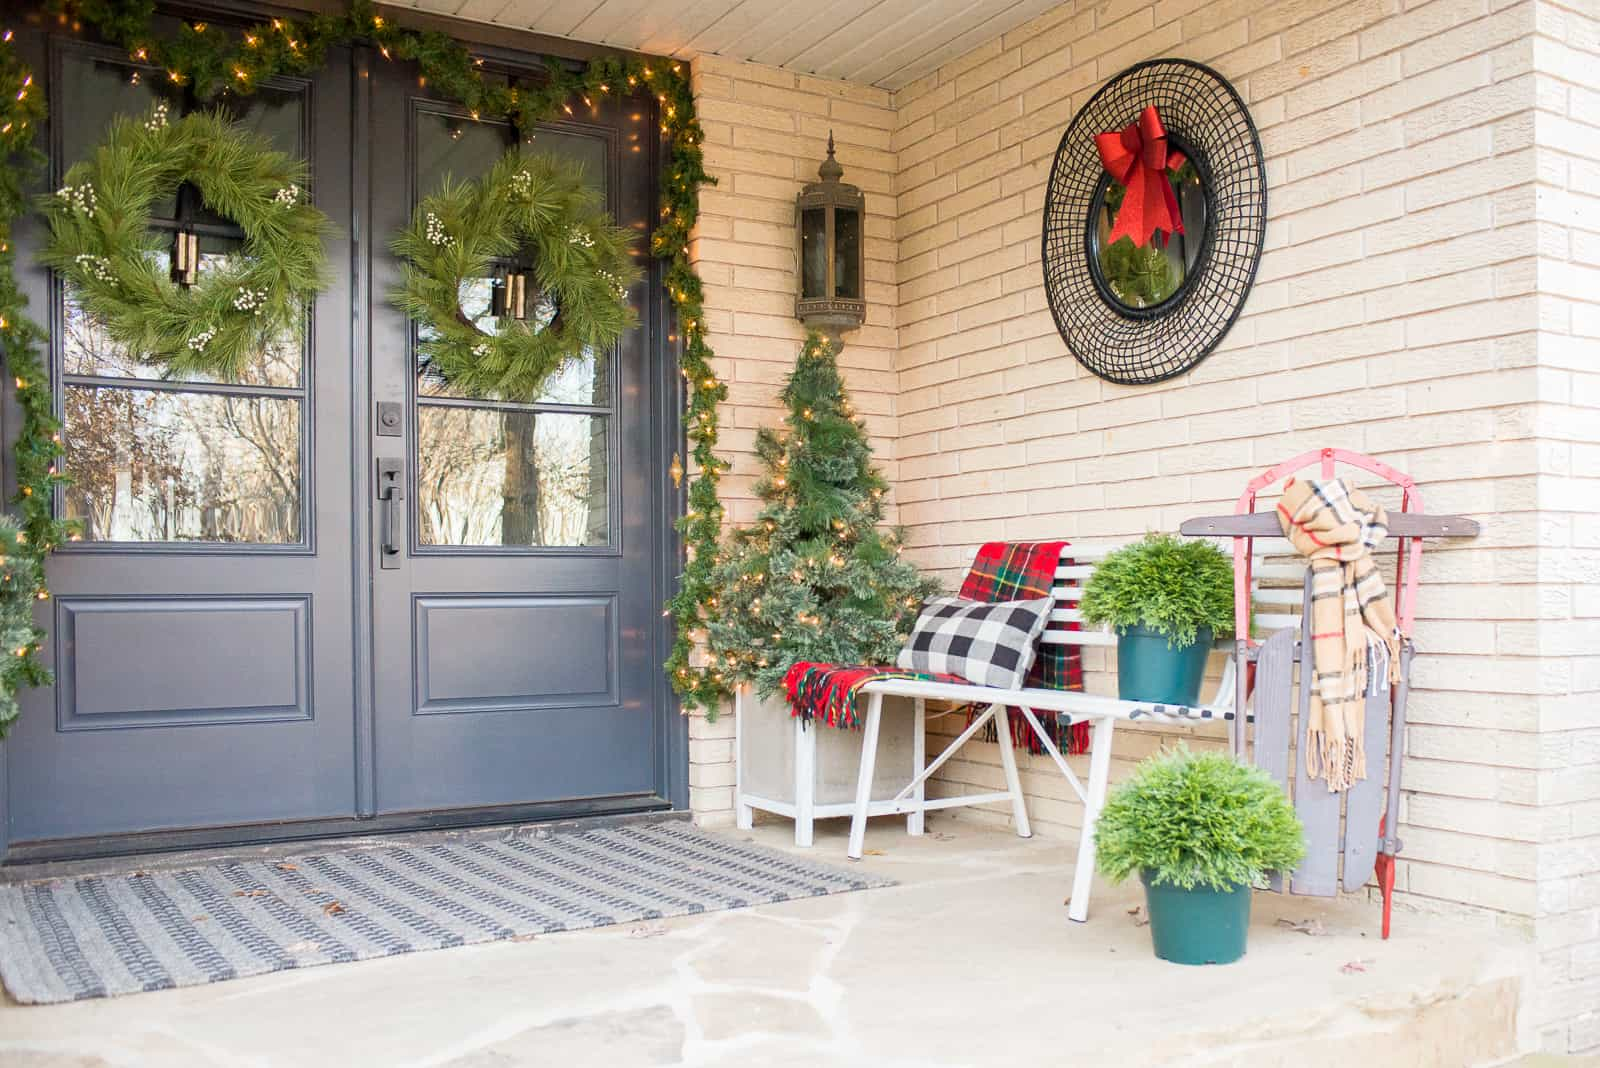 Front Porch Christmas Decorations.Front Porch Christmas Decorating Ideas 5 Bigger Than The